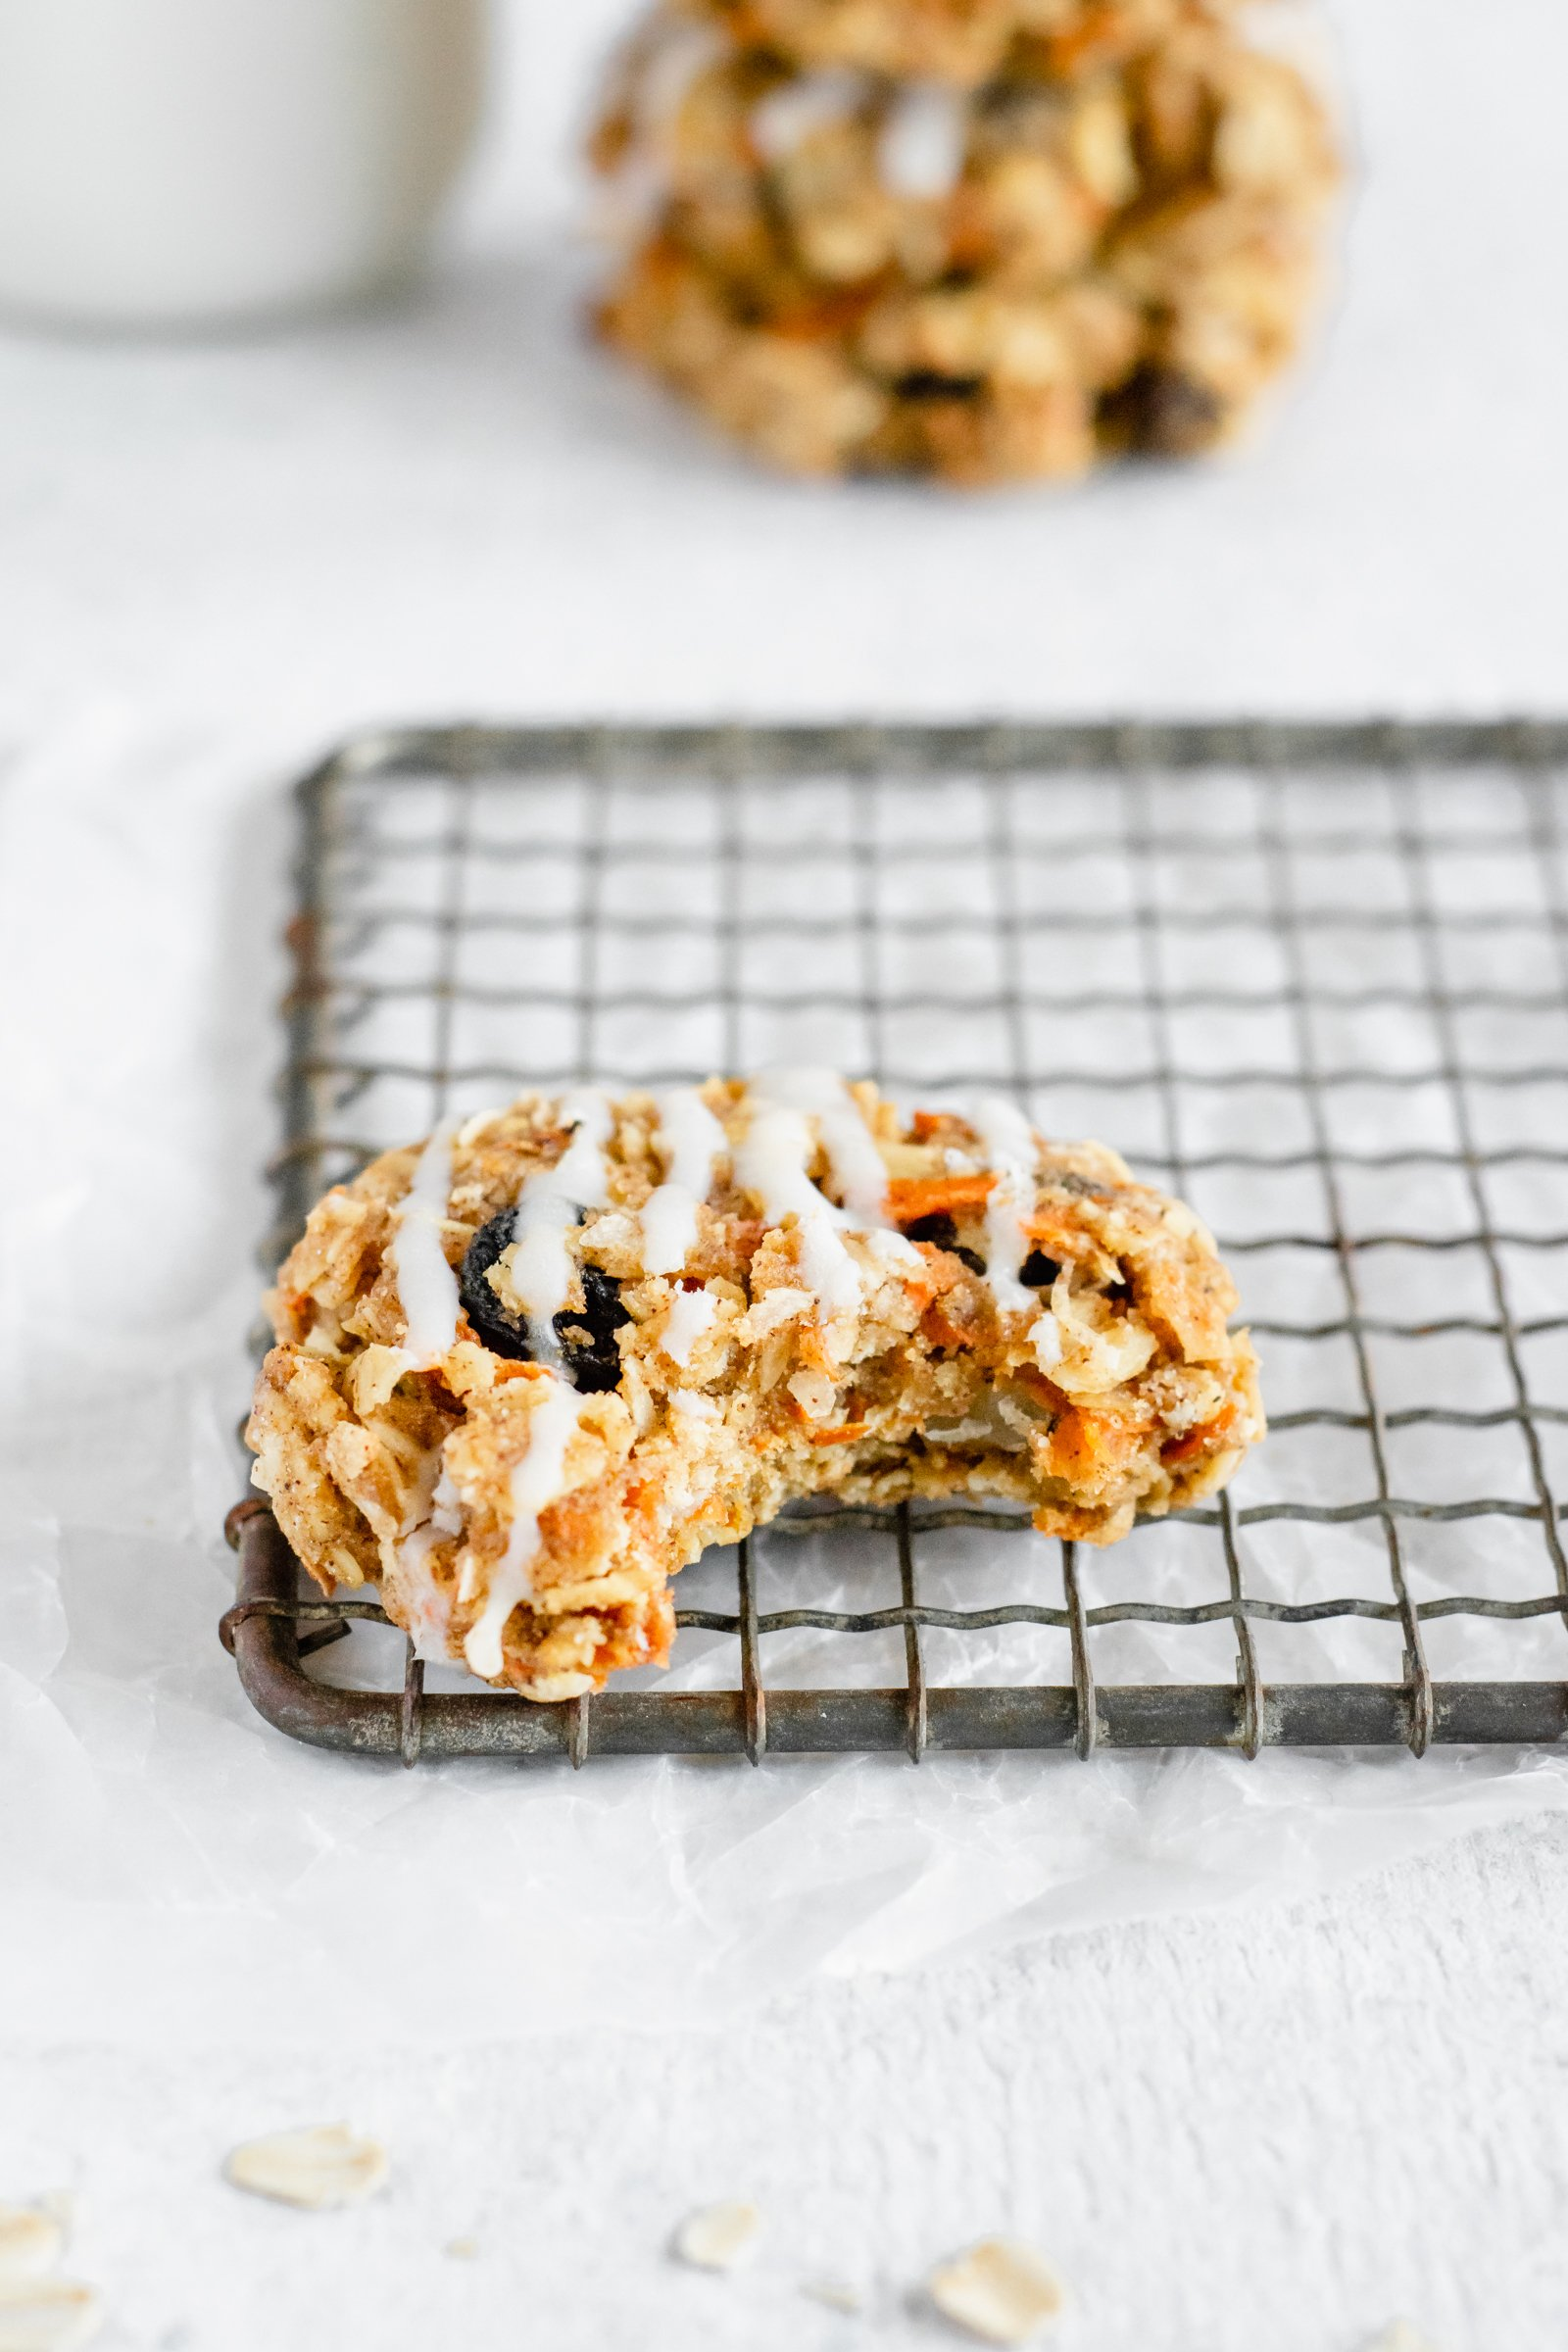 Carrot cake cookie with a bite taken out on top of a wire rack